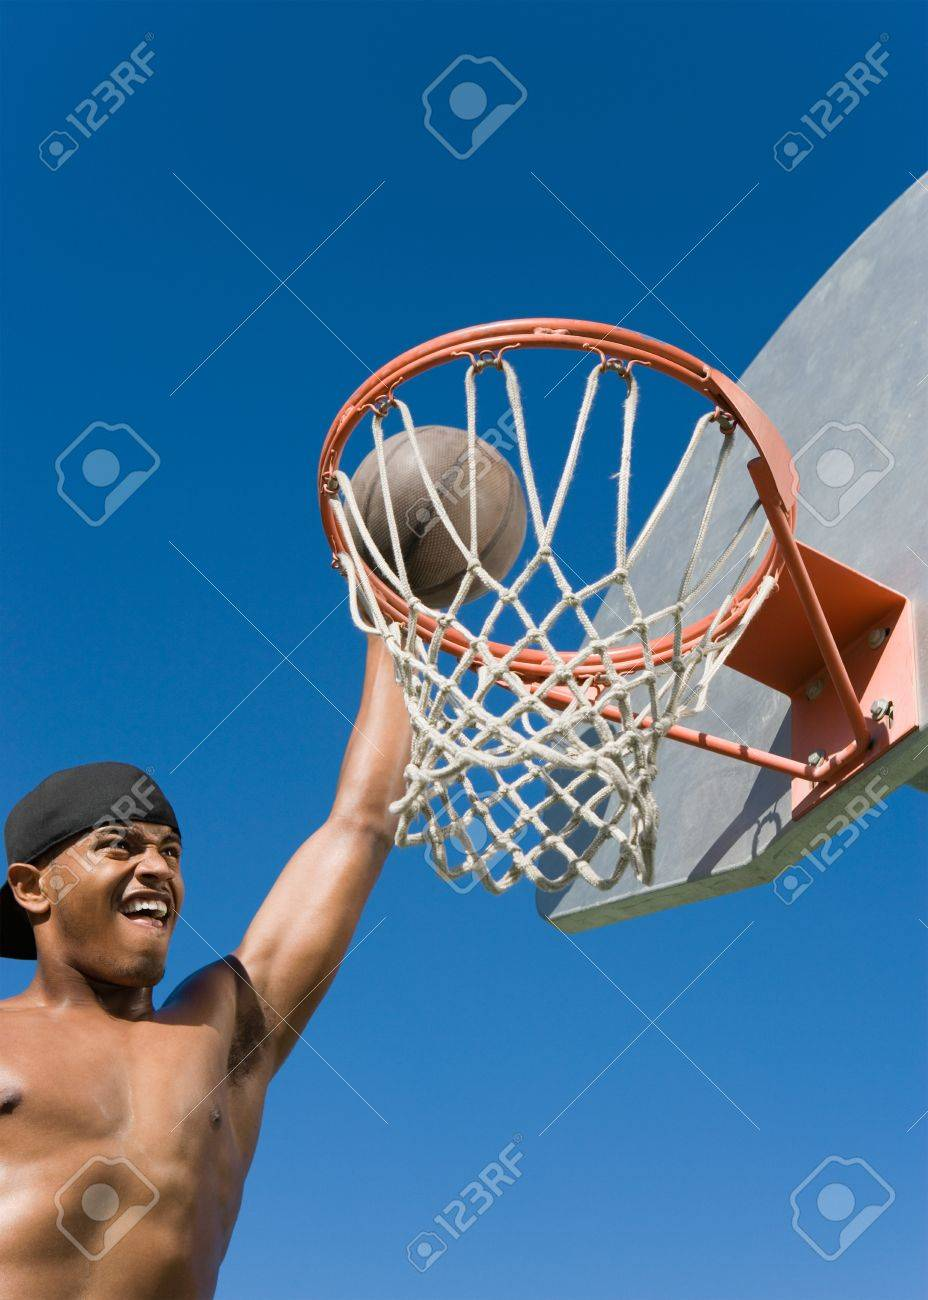 Young man dunking basketball into hoop Stock Photo - 8836259